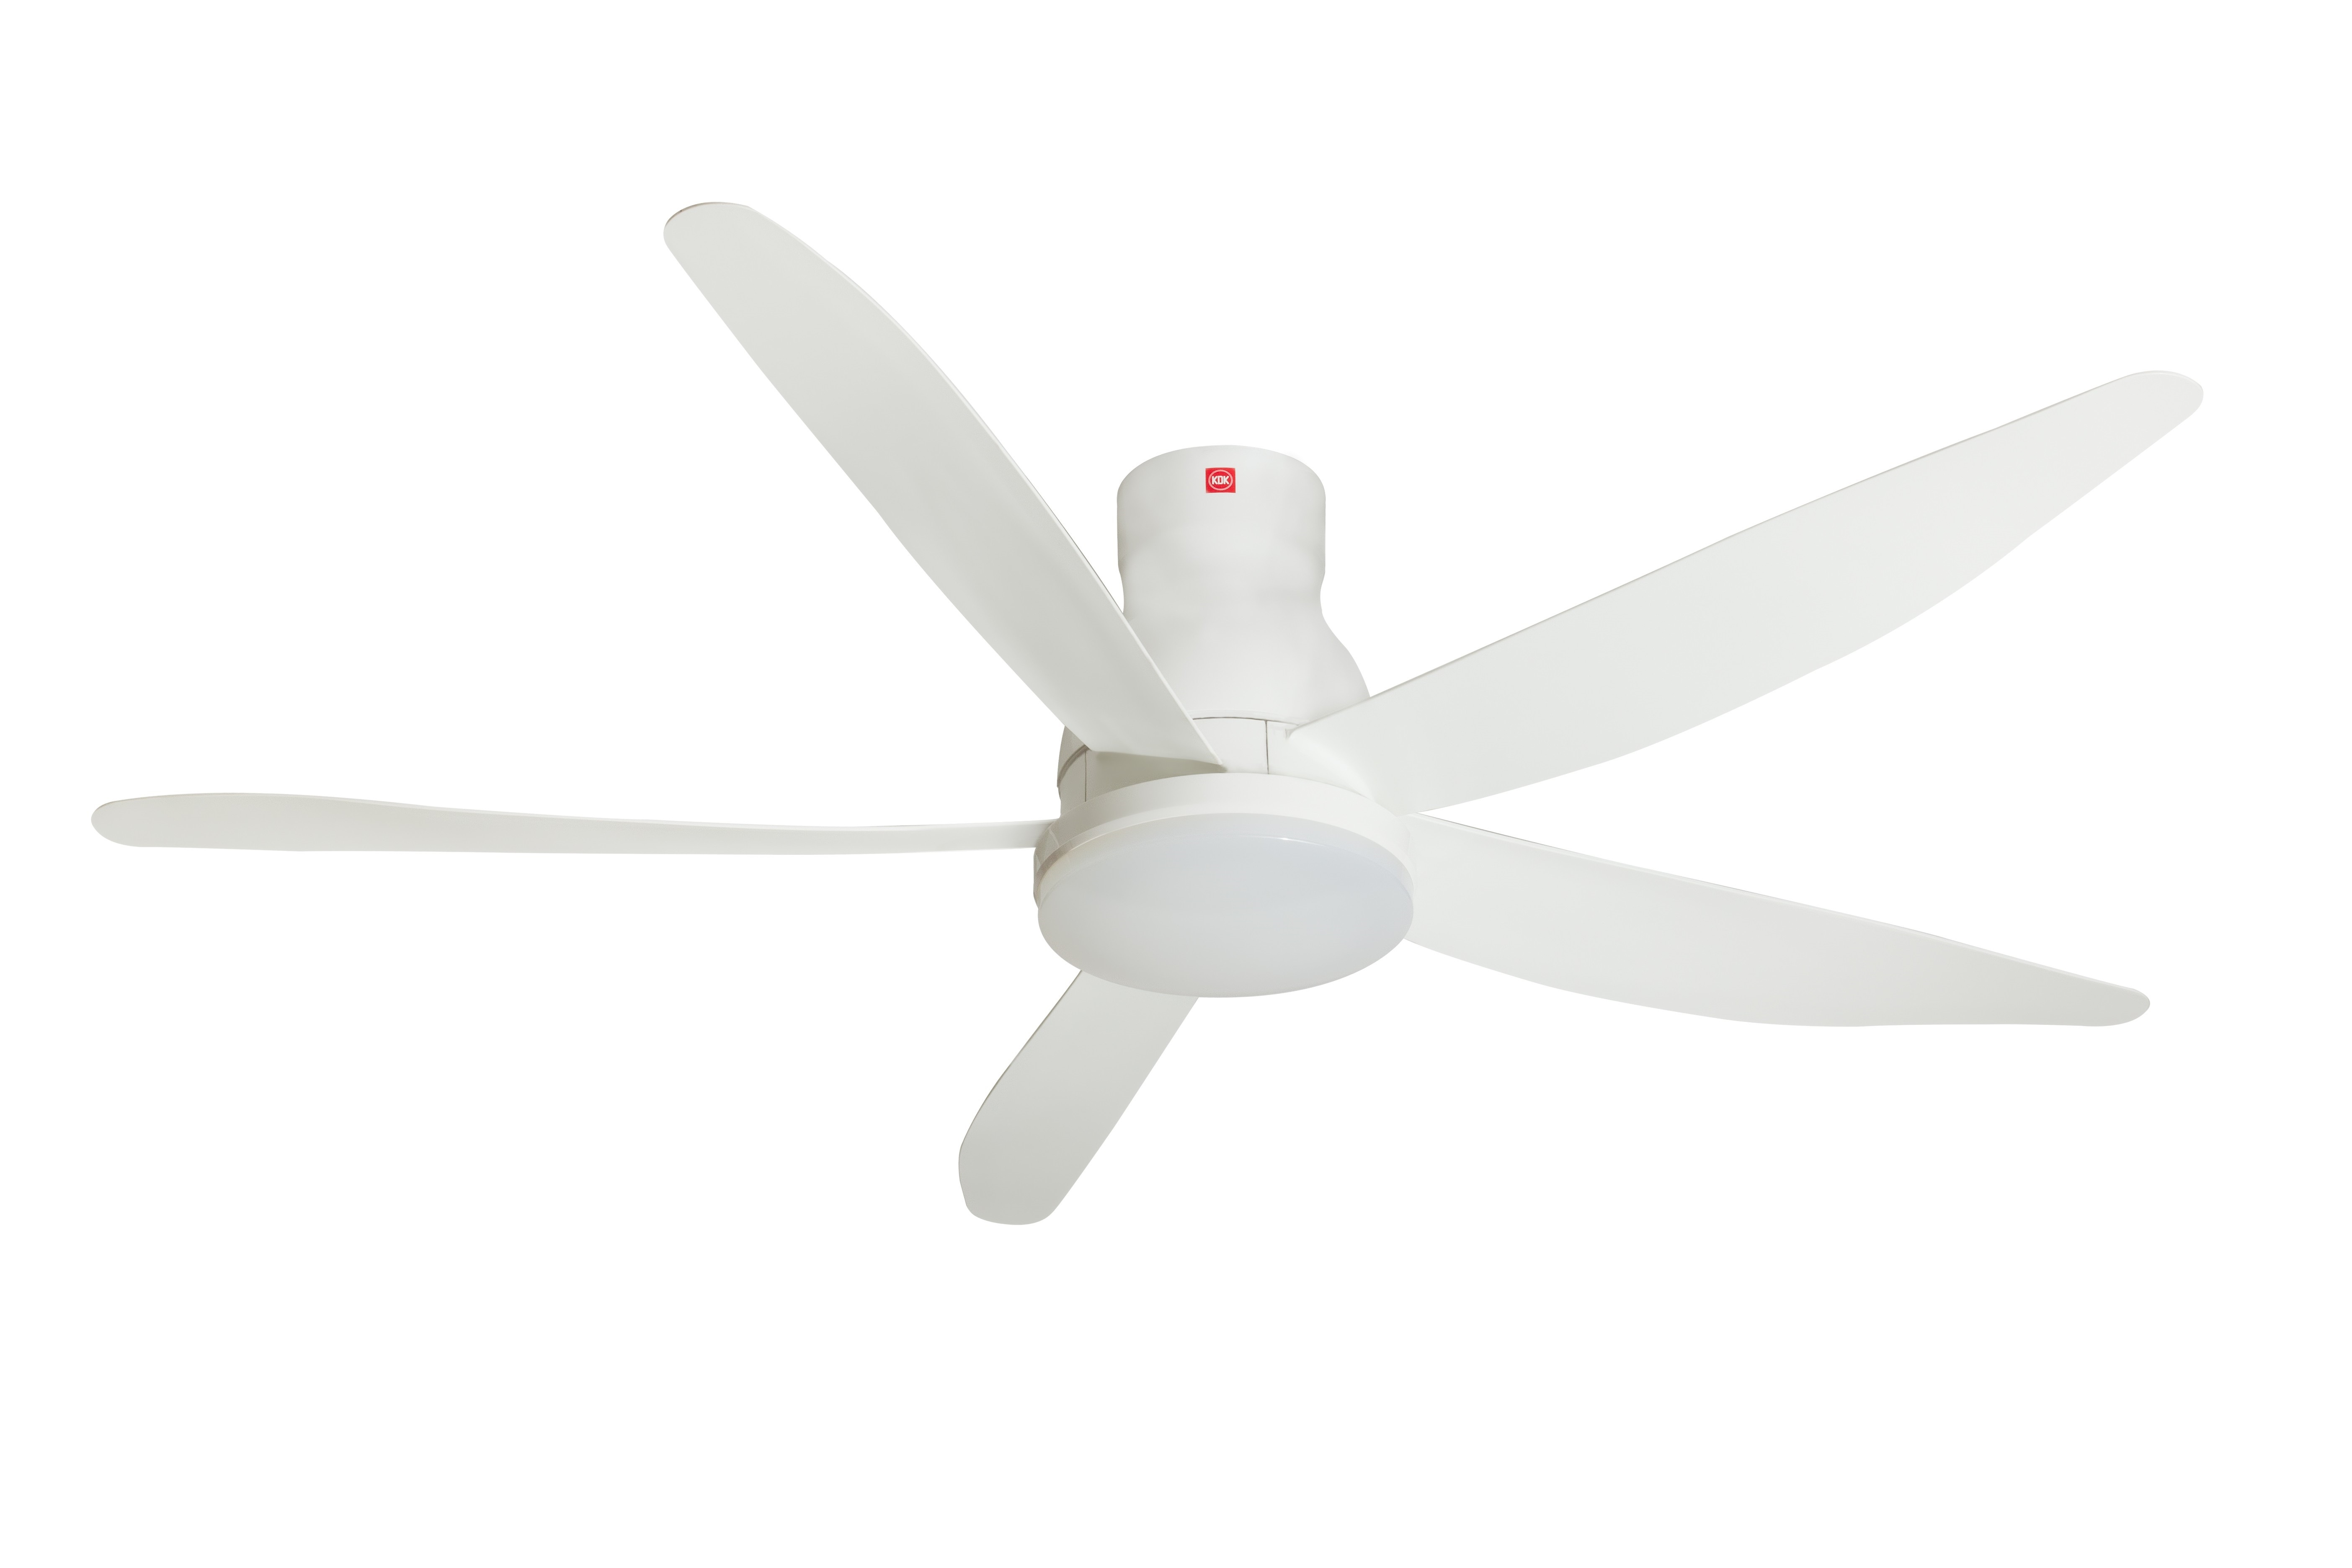 Kdk 5 Blade Ceiling Fan 150cm Led Lamp With Remote Control